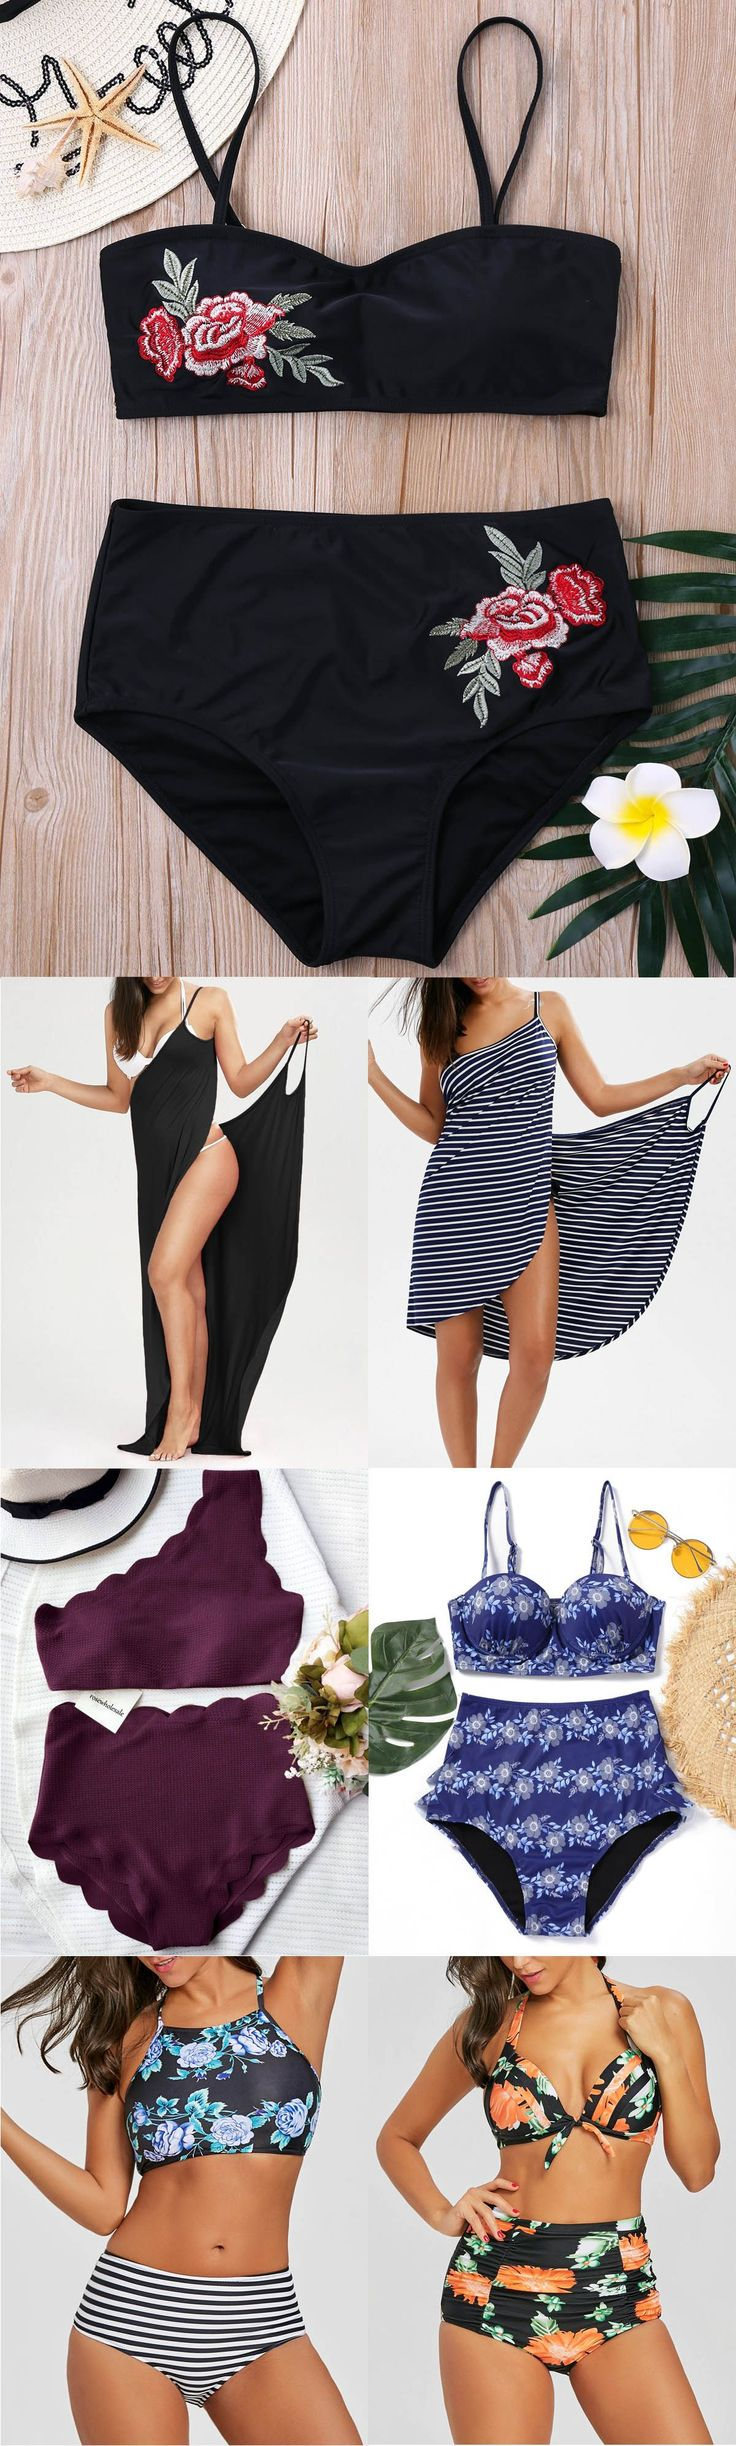 Up to 80% off,Rosewholesale high waisted swimsuit&cover up for trip | Rosewholesale,rosewholesale.com,rosewholesale bathing suit,rosewholesale swimsuit,rosewholesale swimwear,high waist swimsuit,holiday,trip,vocation,beach day,spring break outfit,holiday